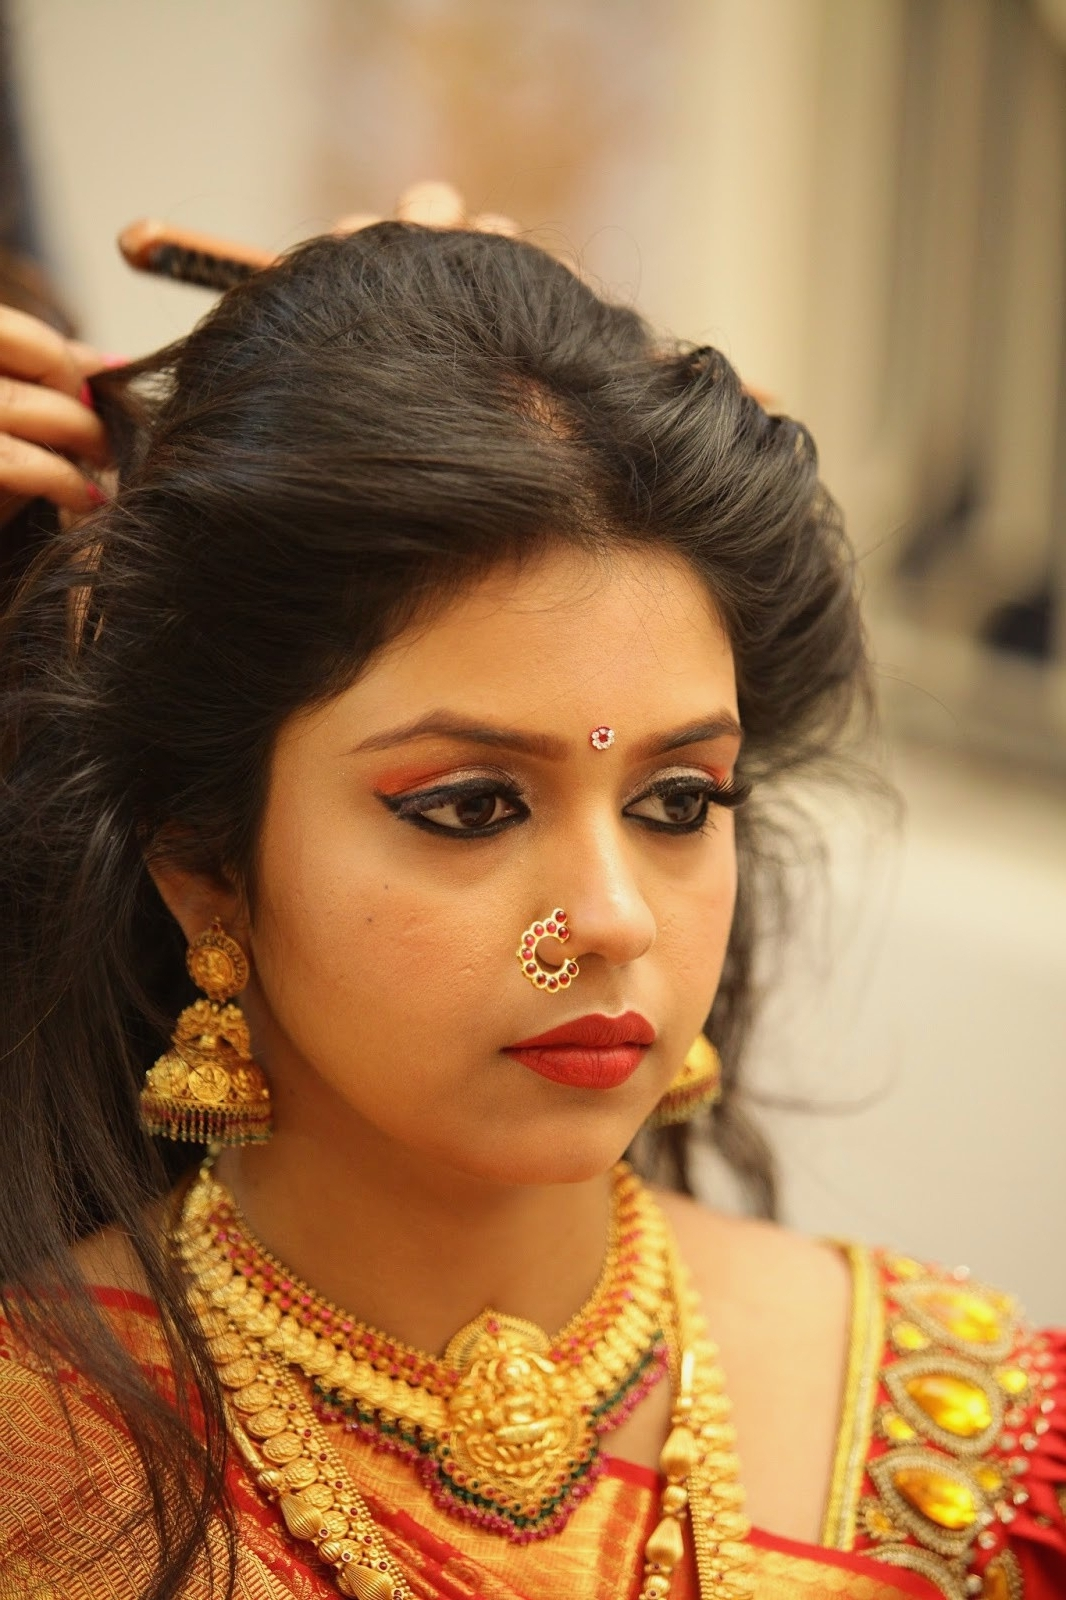 Hair Style For South Indian Wedding Stepstep Wedding Hairstyles In Widely Used South Indian Wedding Hairstyles (View 4 of 15)